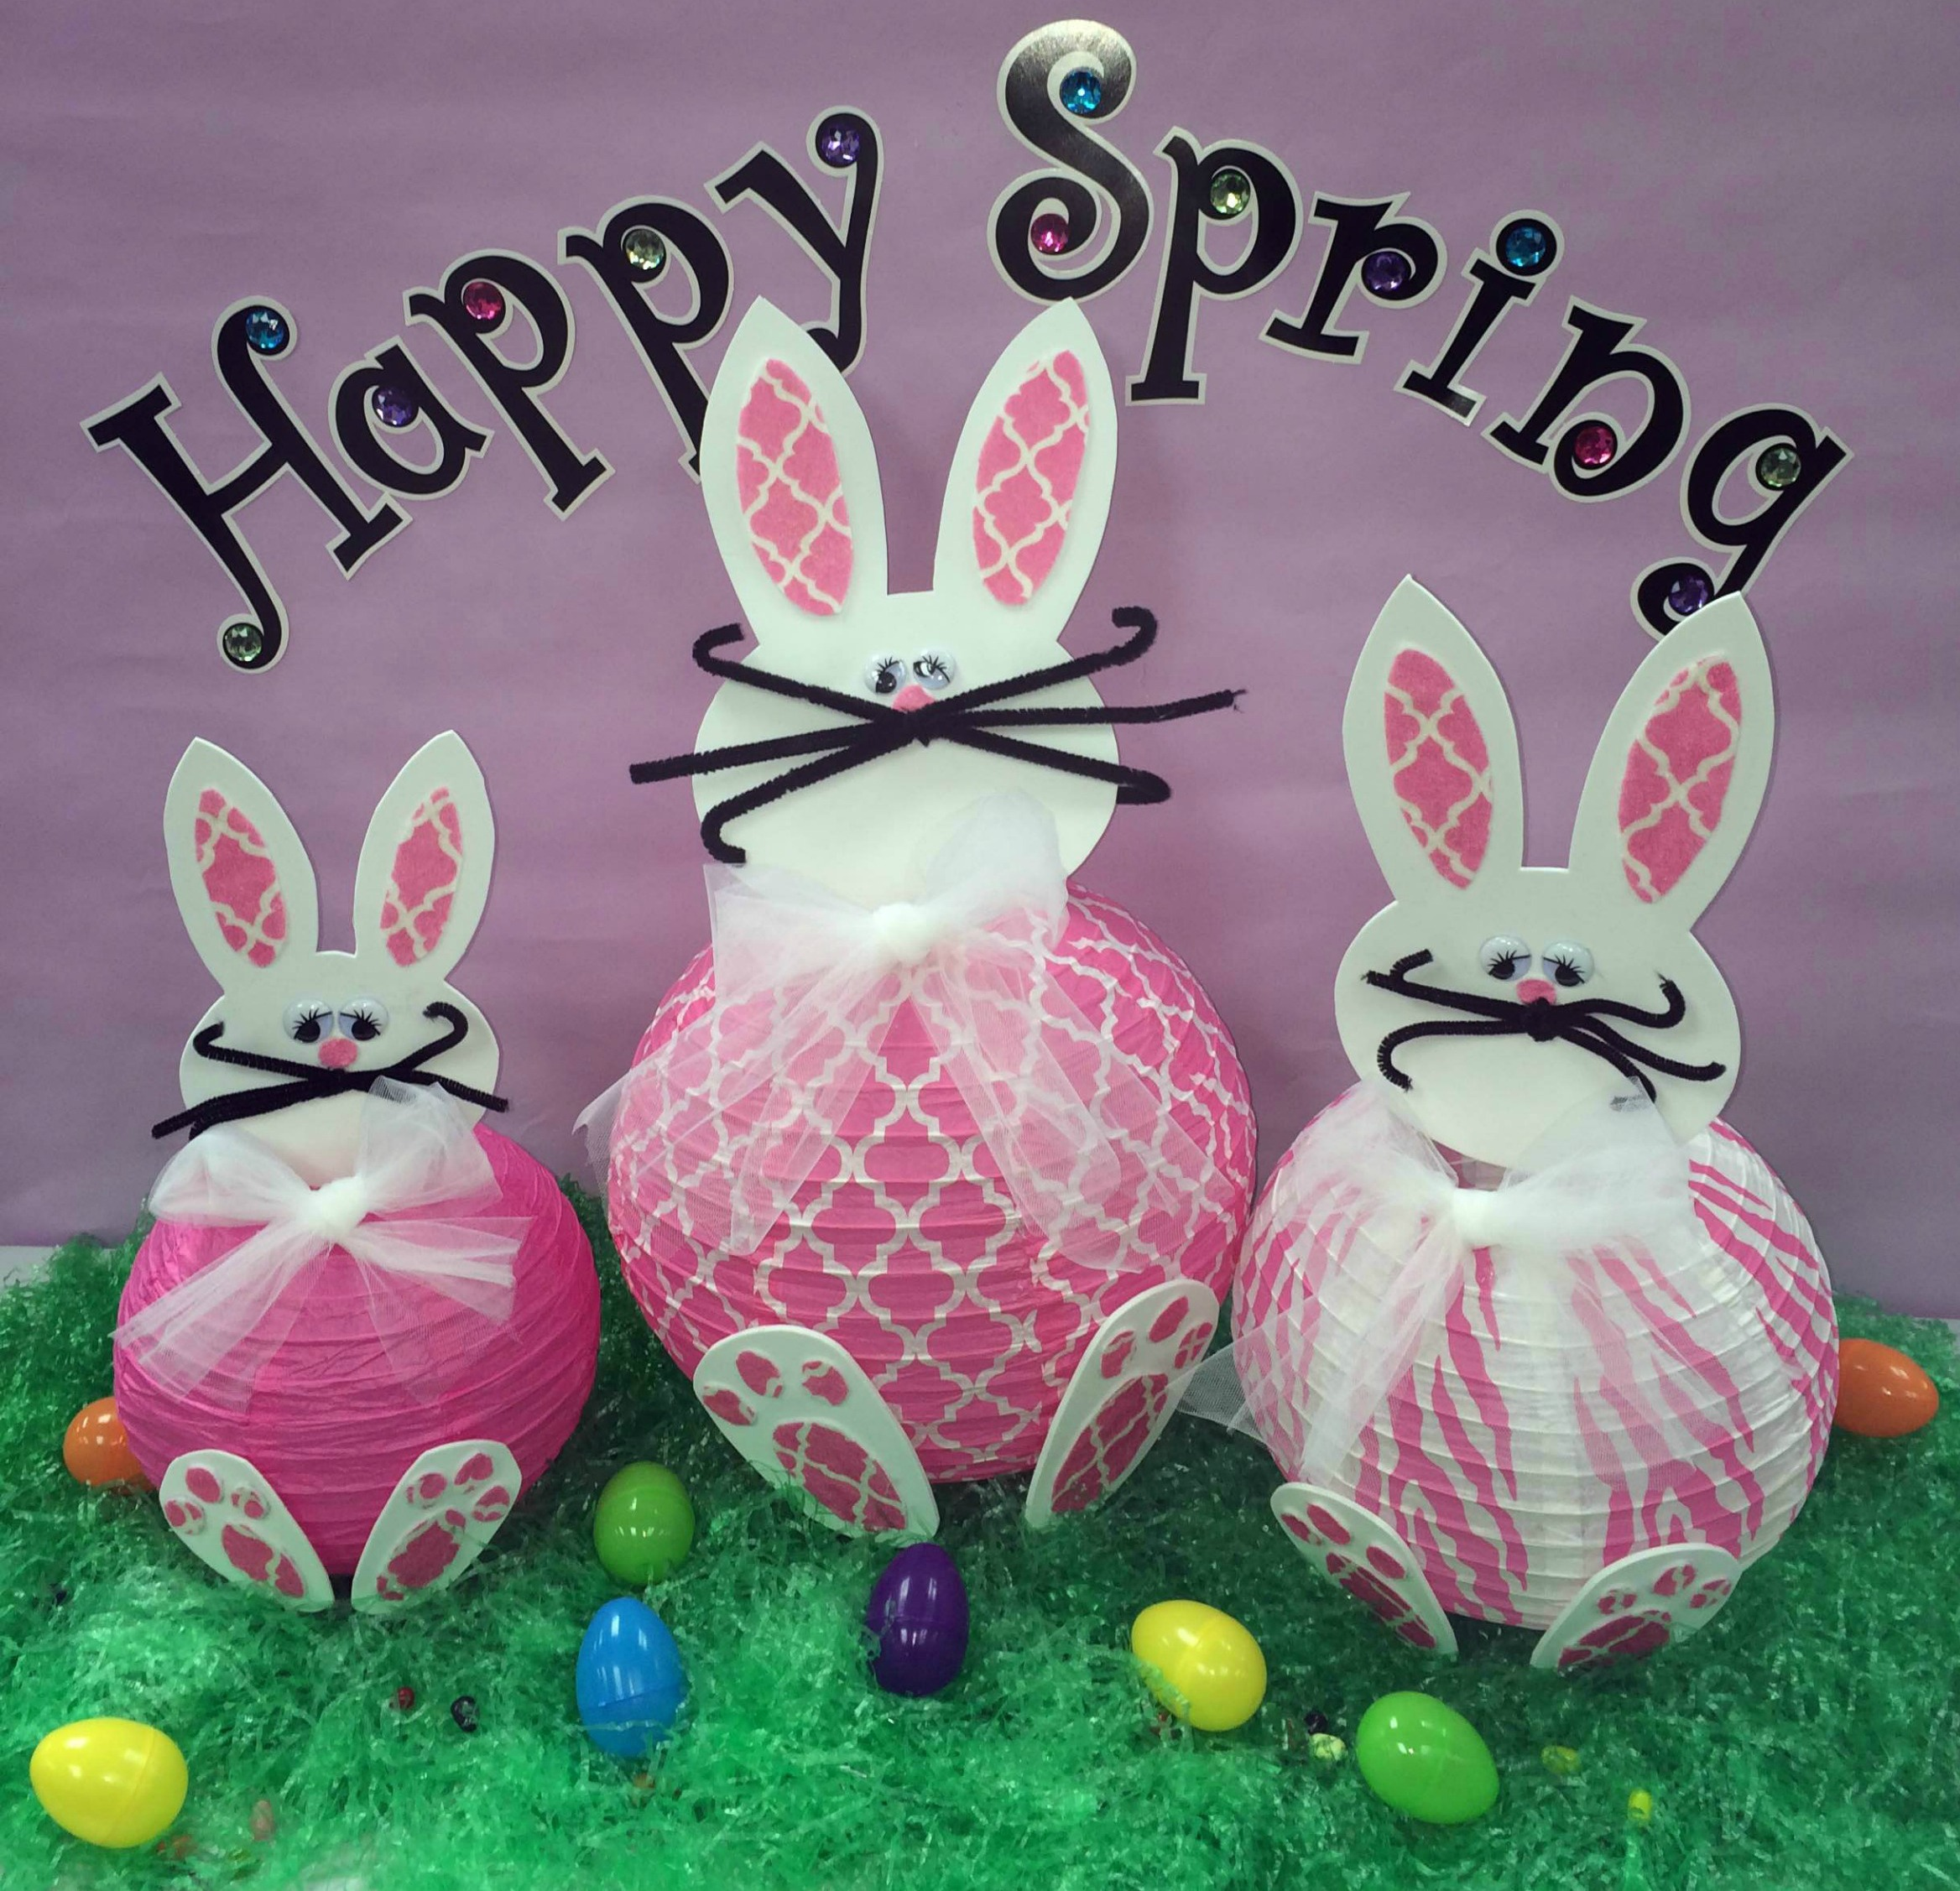 DIY Spring Decorations: Paper Bunny Lantern